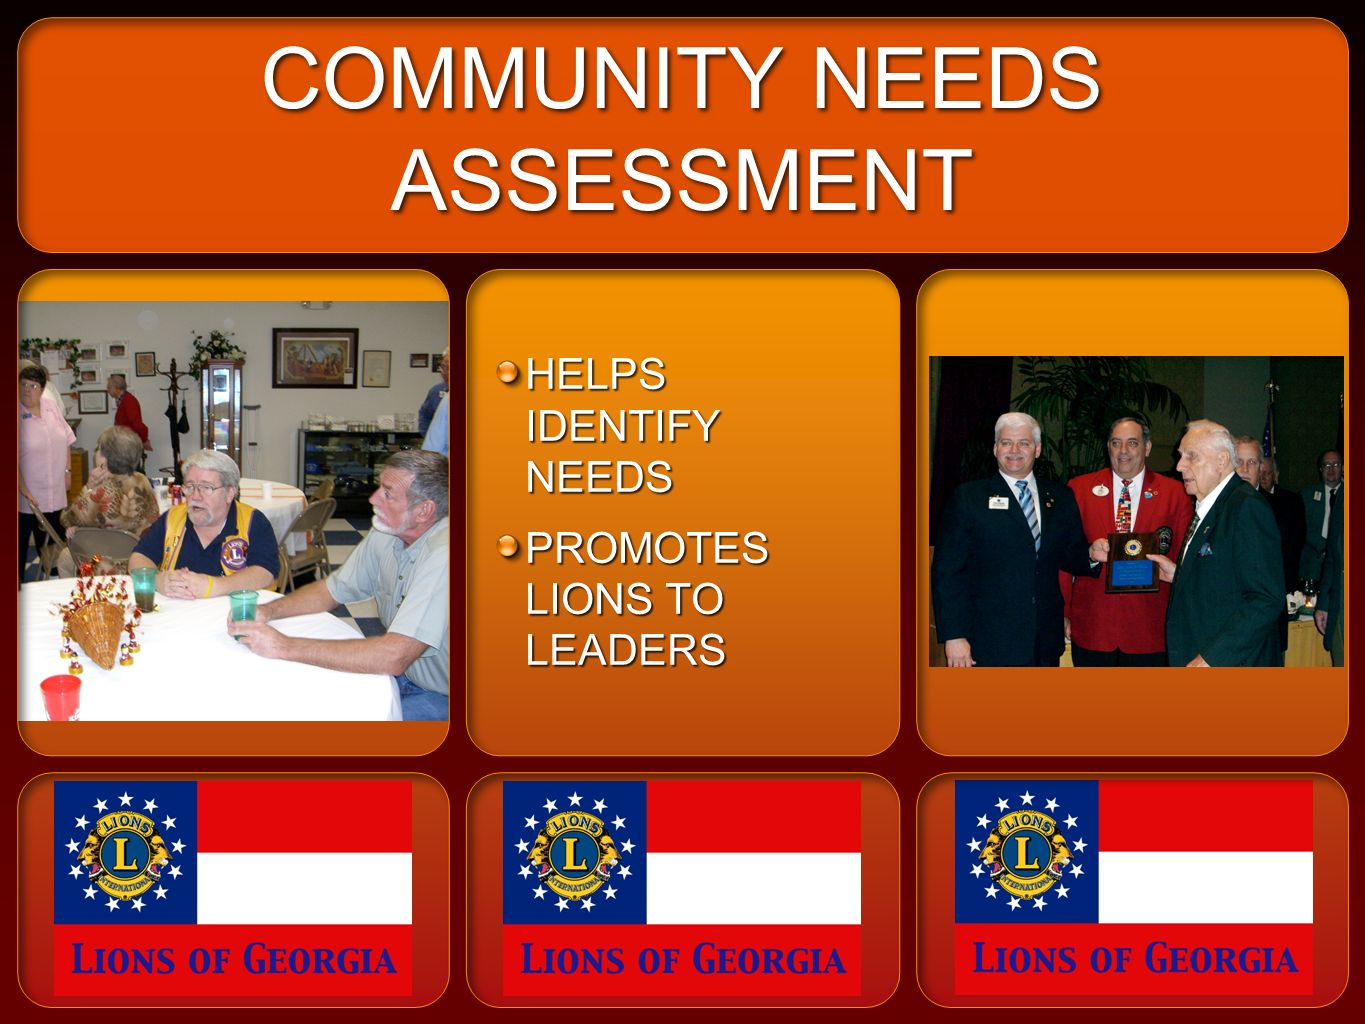 COMMUNITY NEEDS ASSESSMENT HELPS IDENTIFY NEEDS PROMOTES LIONS TO LEADERS HELPS IDENTIFY NEEDS PROMOTES LIONS TO LEADERS